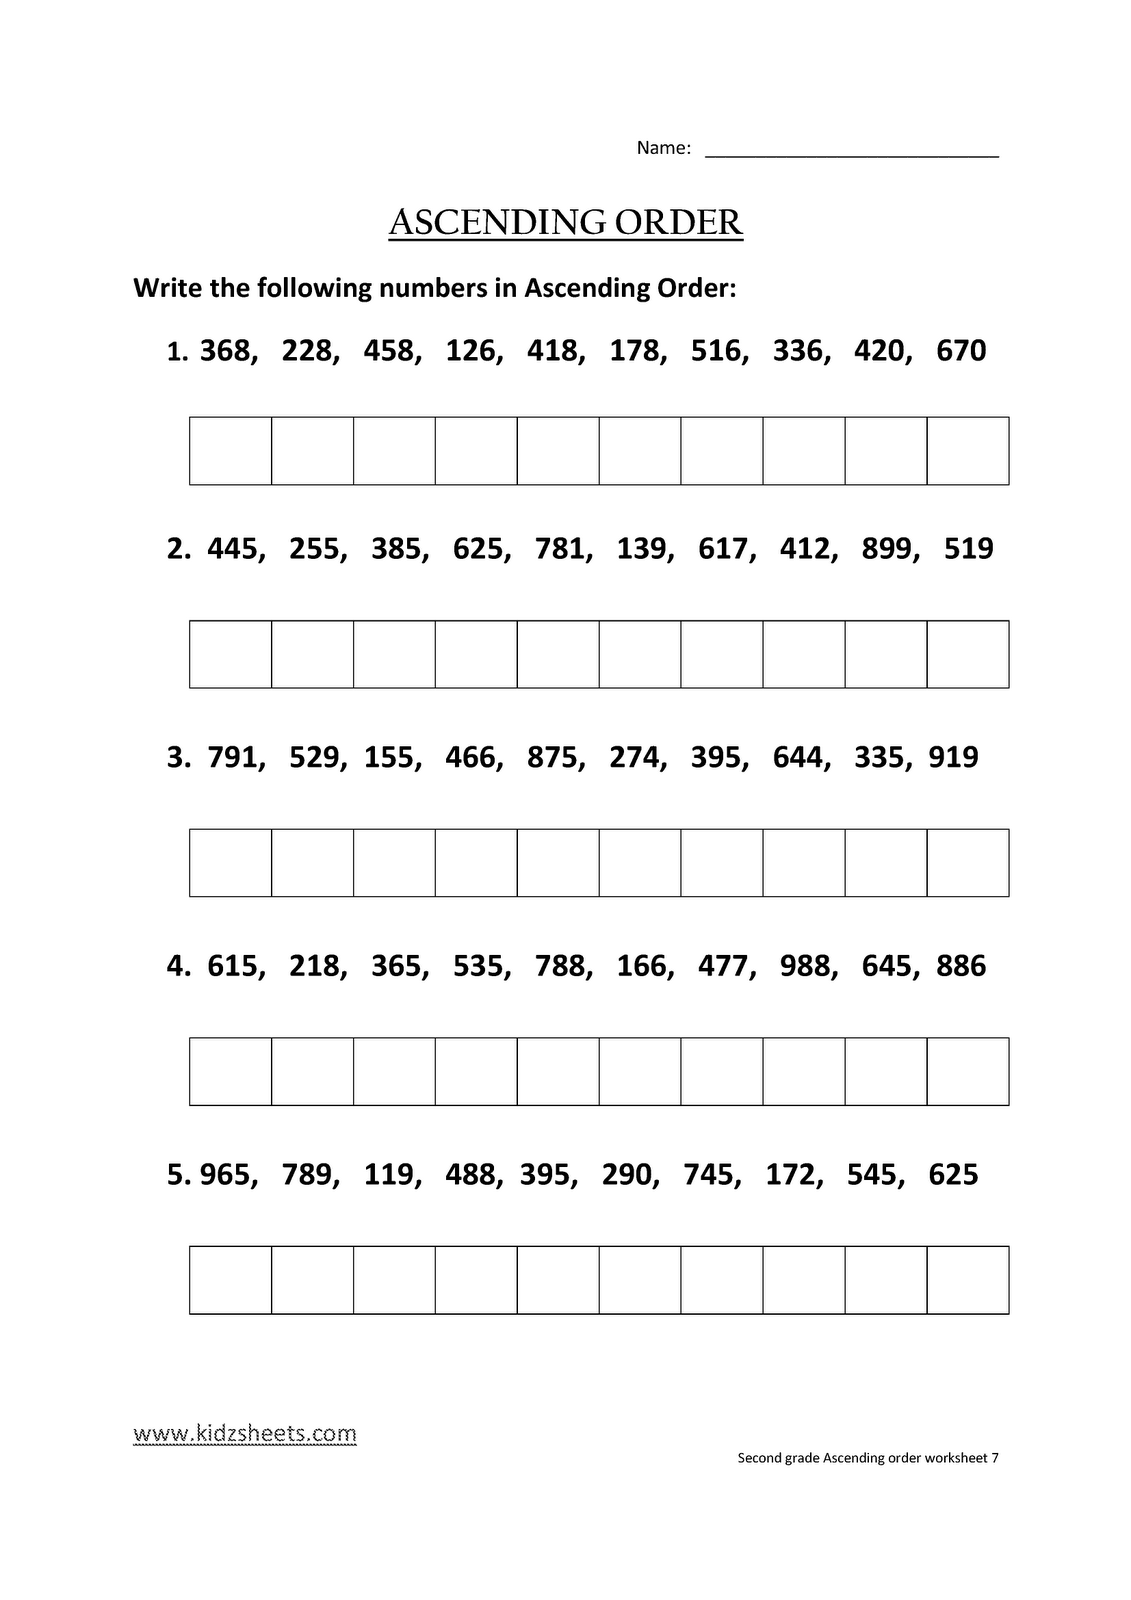 Kidz Worksheets Second Grade Ascending Order Worksheet7